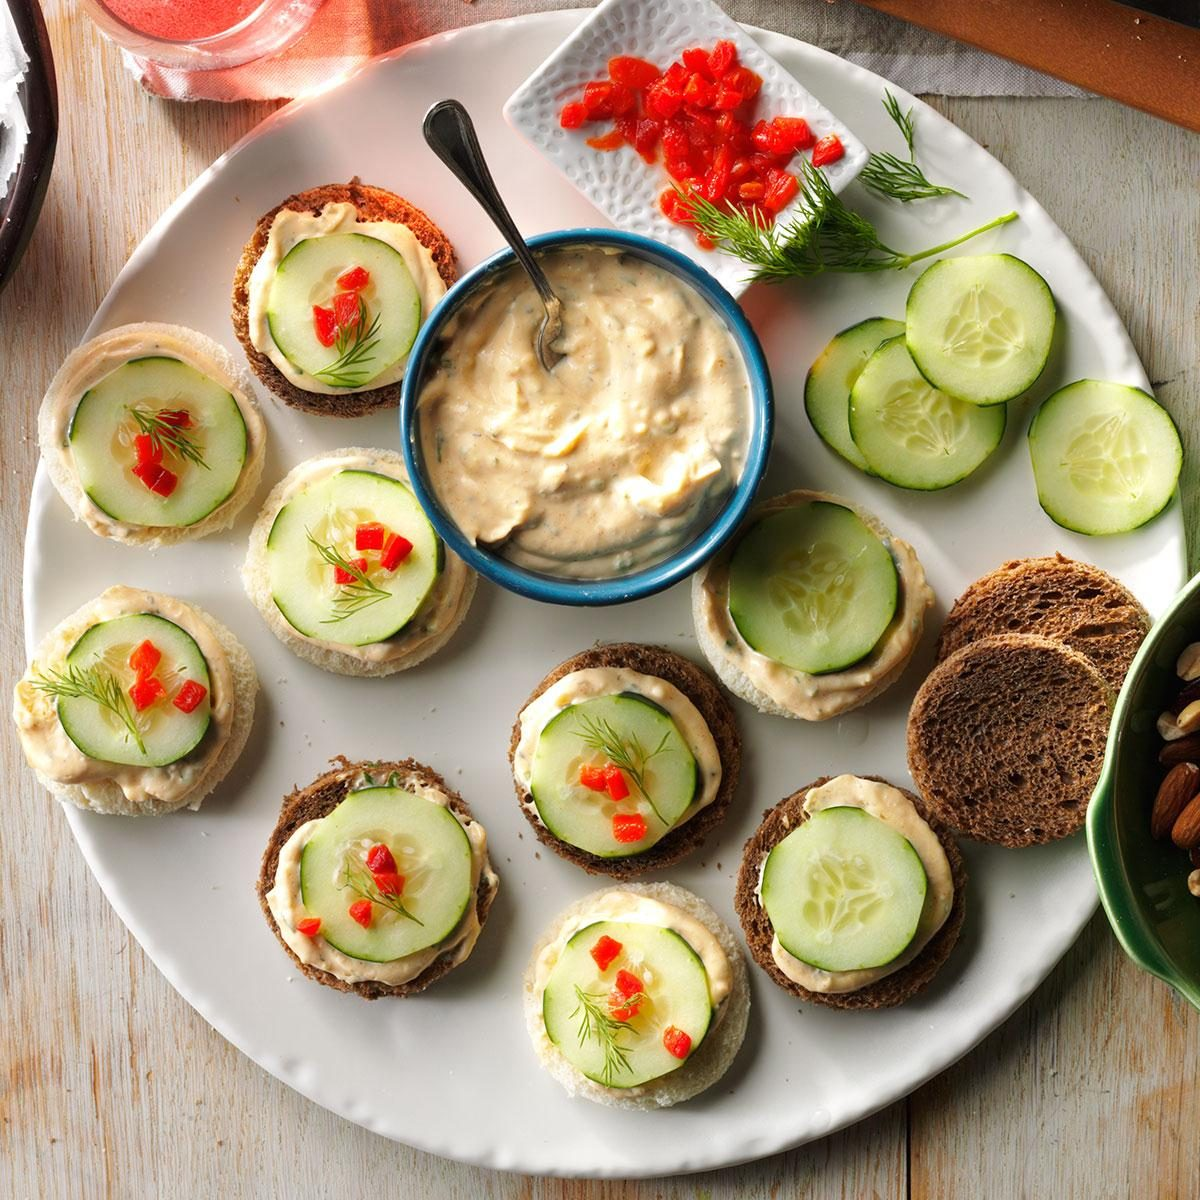 Cucumber canapes recipe taste of home for Canape dessert ideas